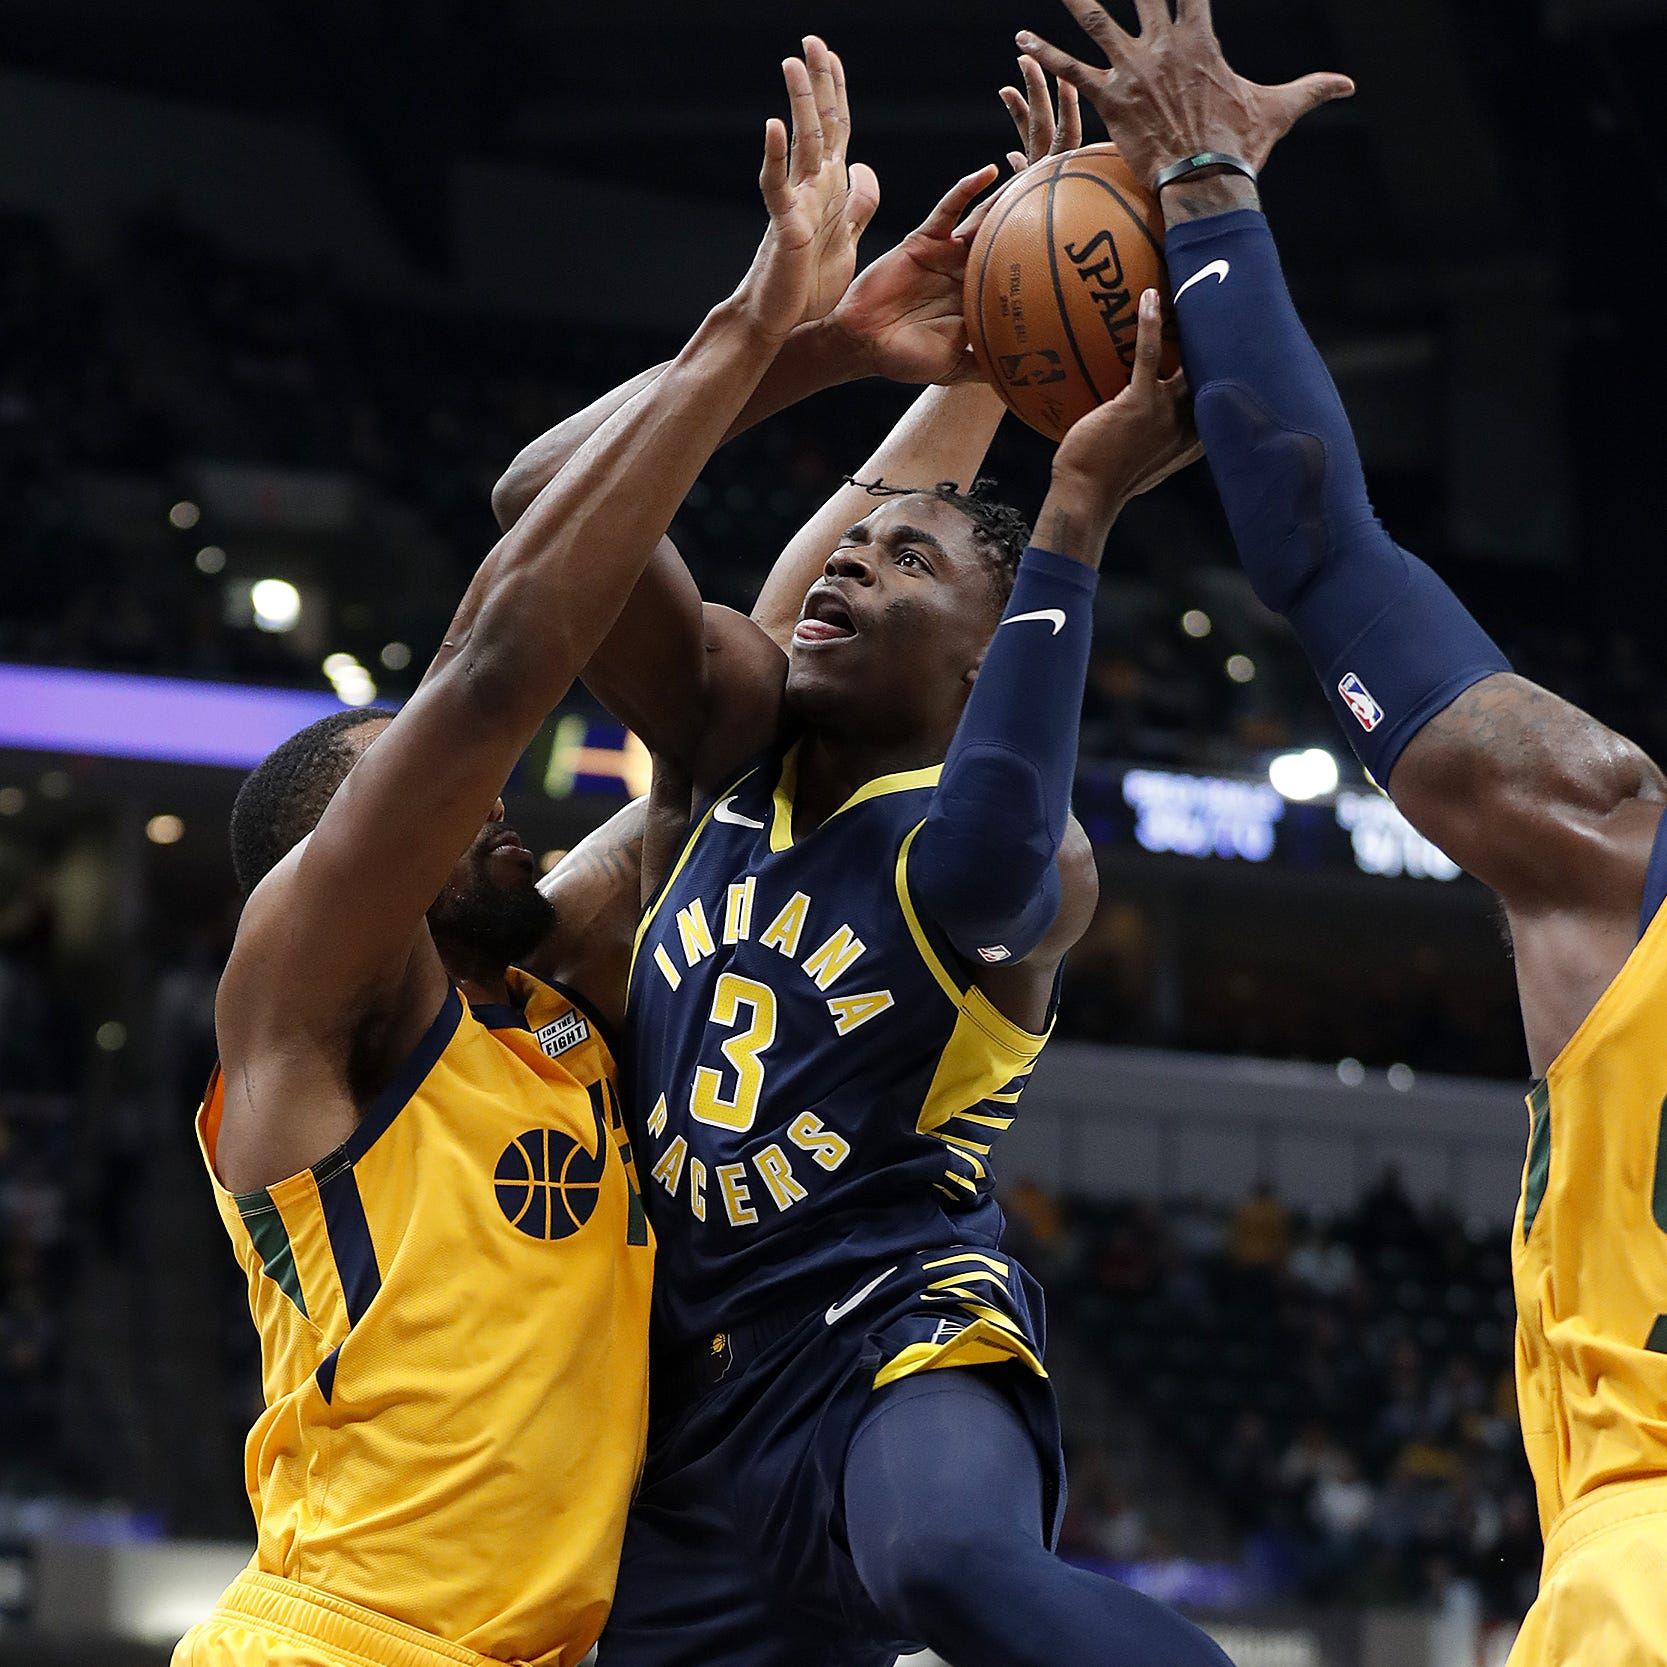 Aaron Holiday slam brings down the house in another career night for Pacers